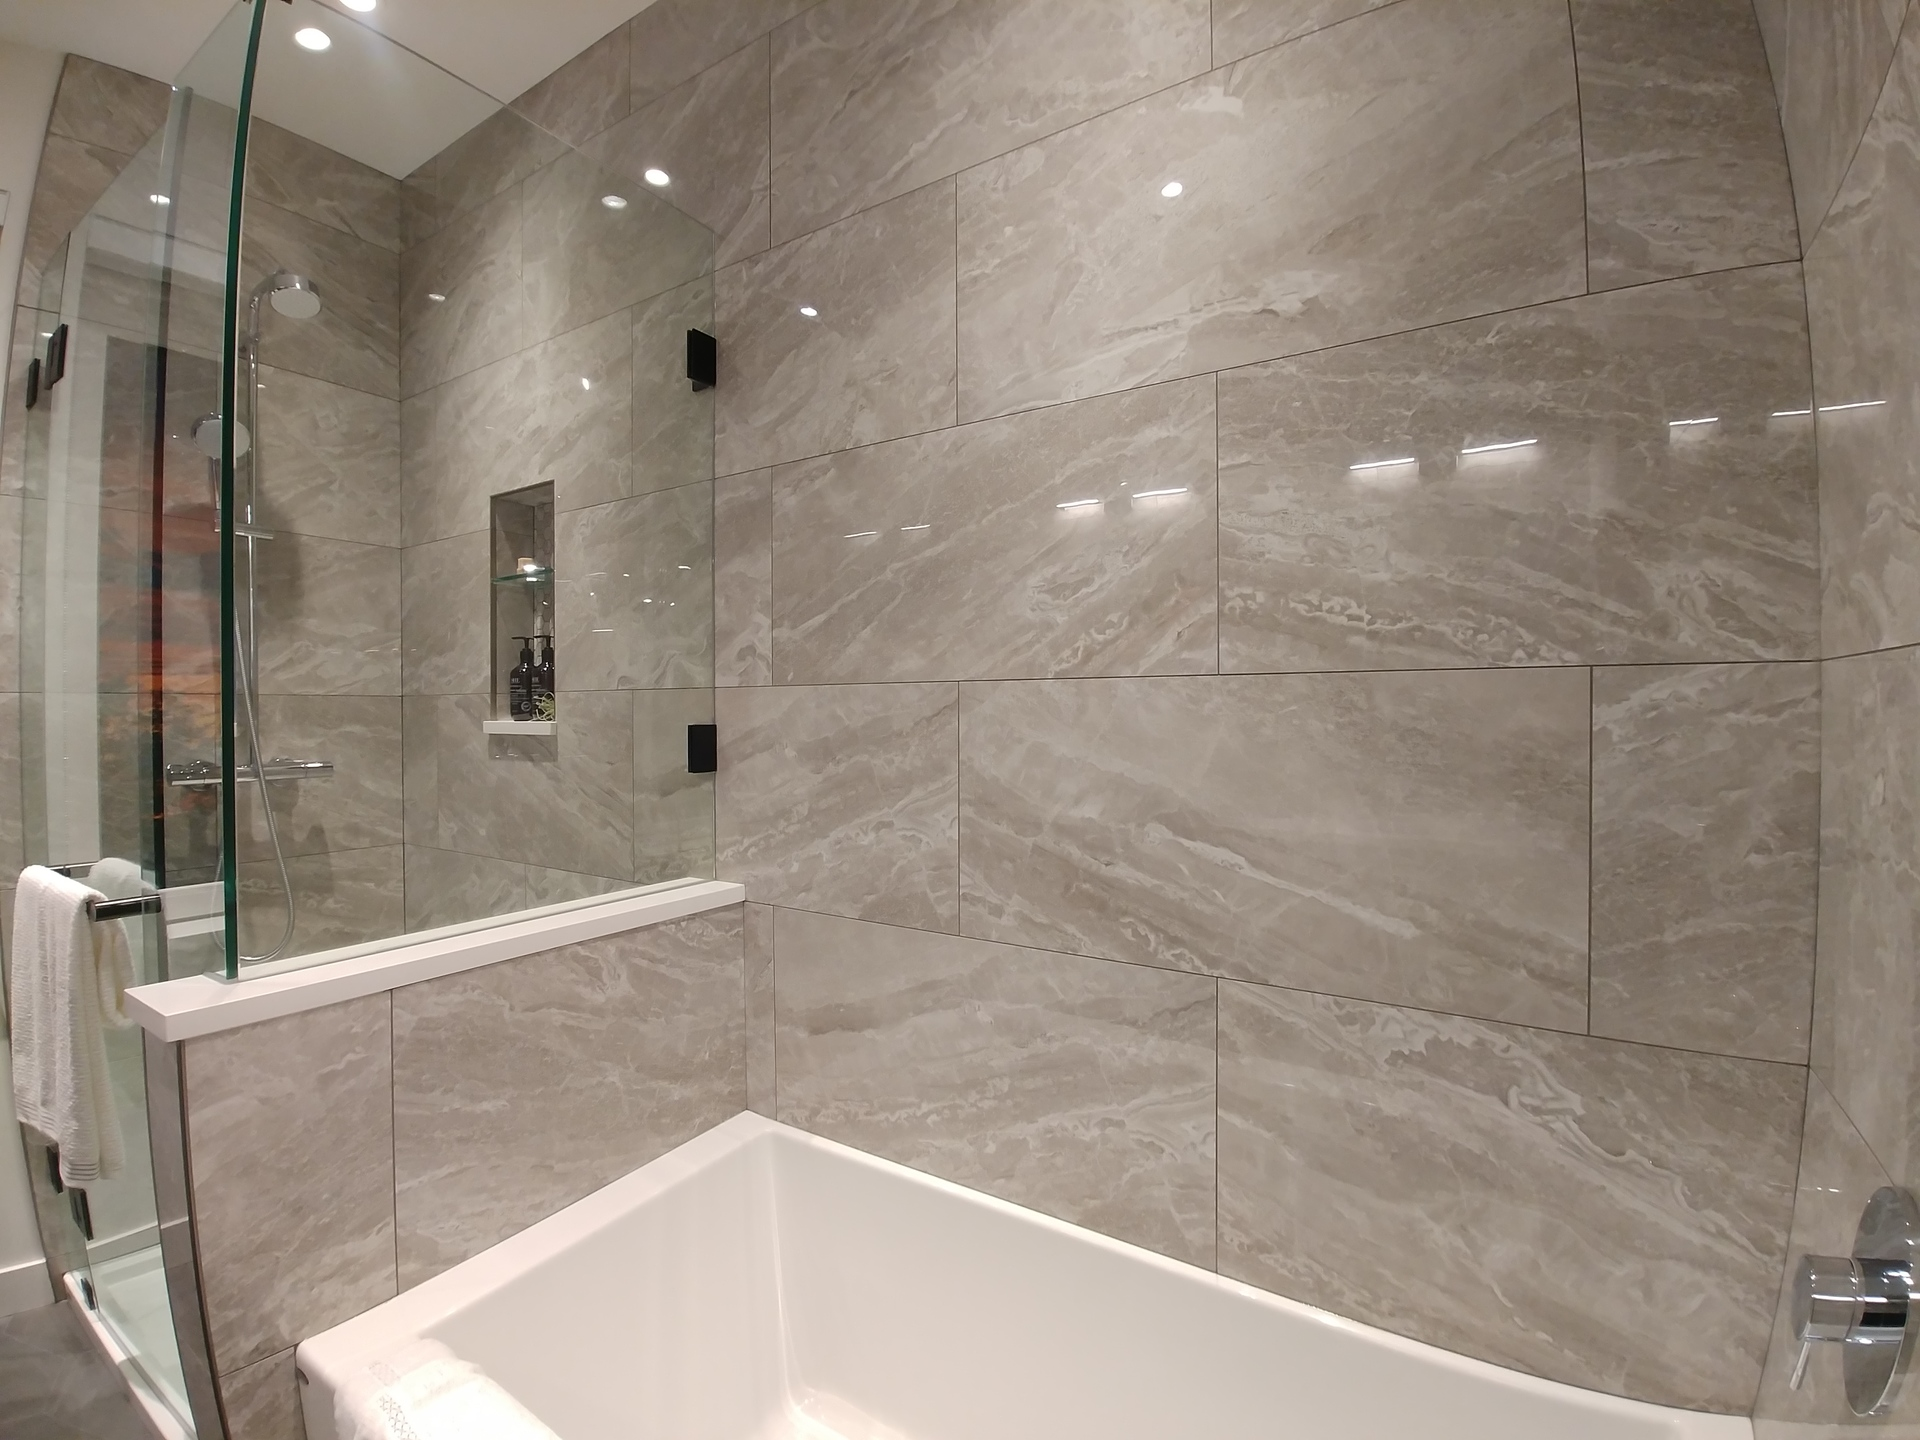 skagen-master-bath-shower at Skagen townhomes (606 Foster Avenue, Coquitlam West, Coquitlam)